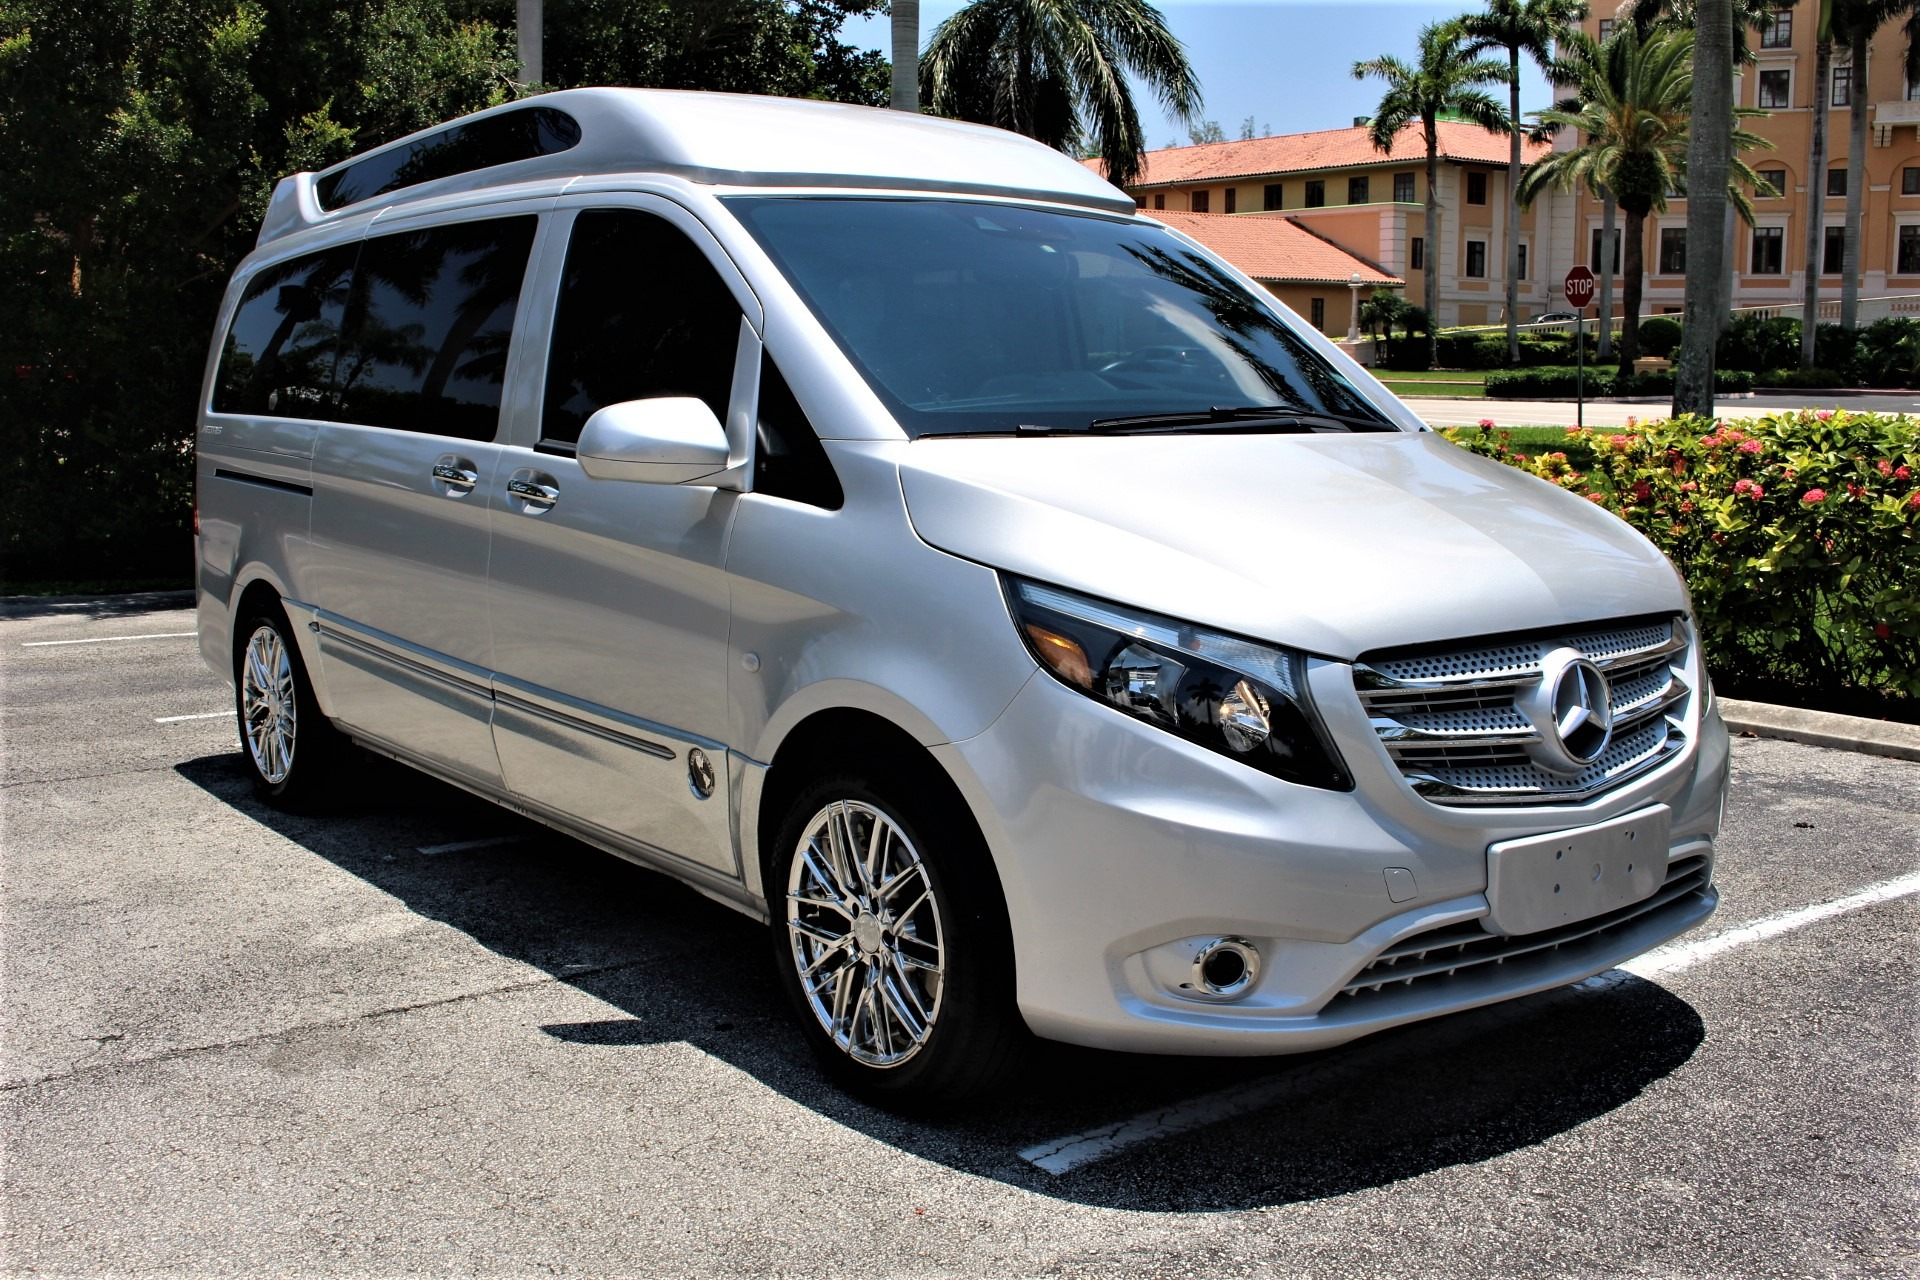 Used 2016 Mercedes-Benz Metris Passenger Custom for sale Sold at The Gables Sports Cars in Miami FL 33146 2